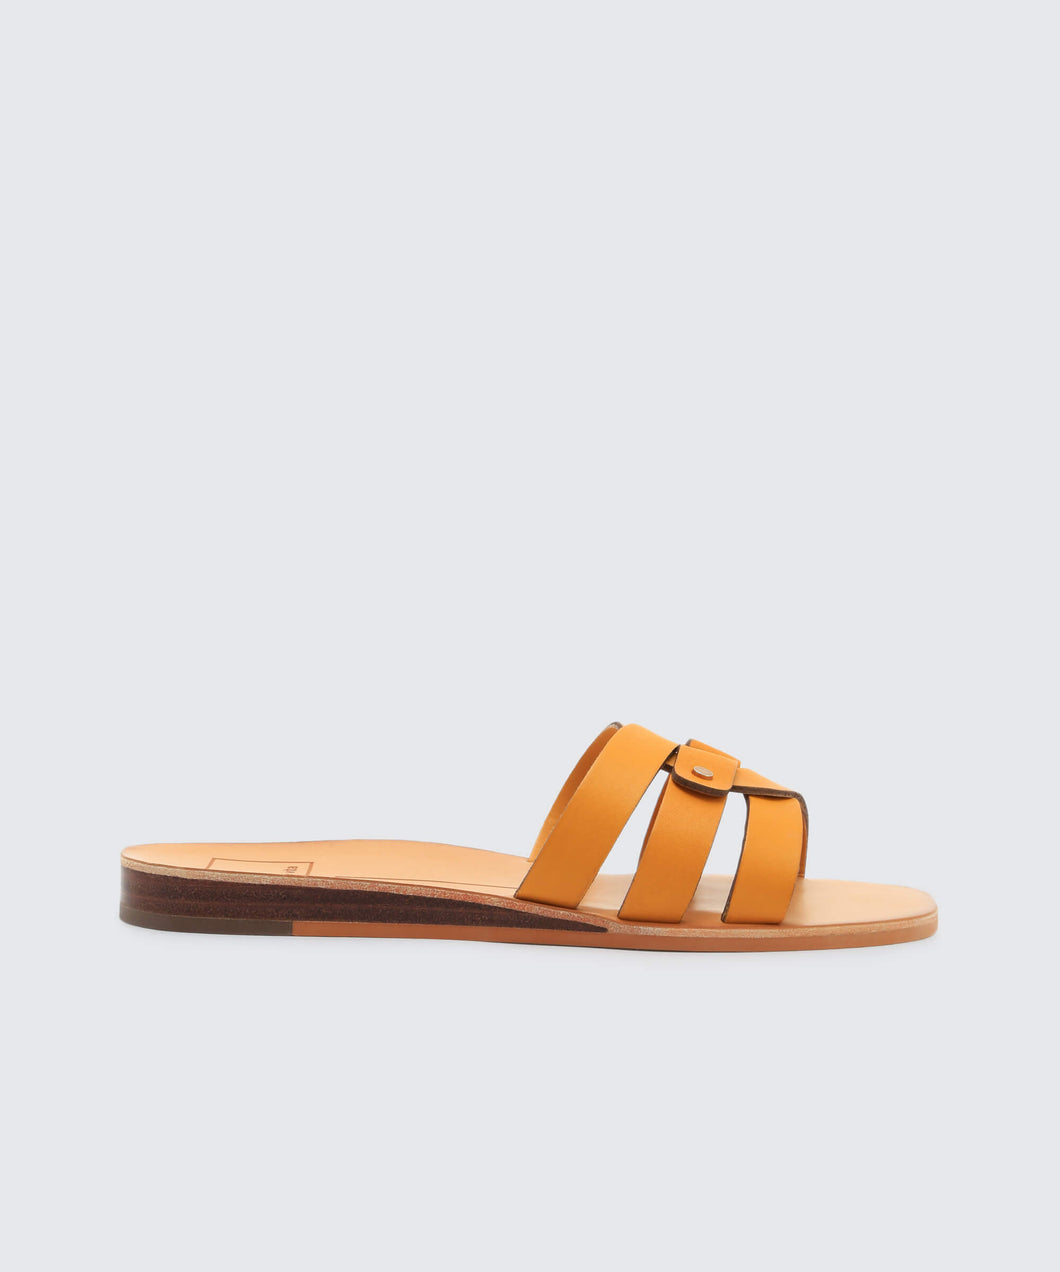 CAIT SANDALS HONEY -   Dolce Vita